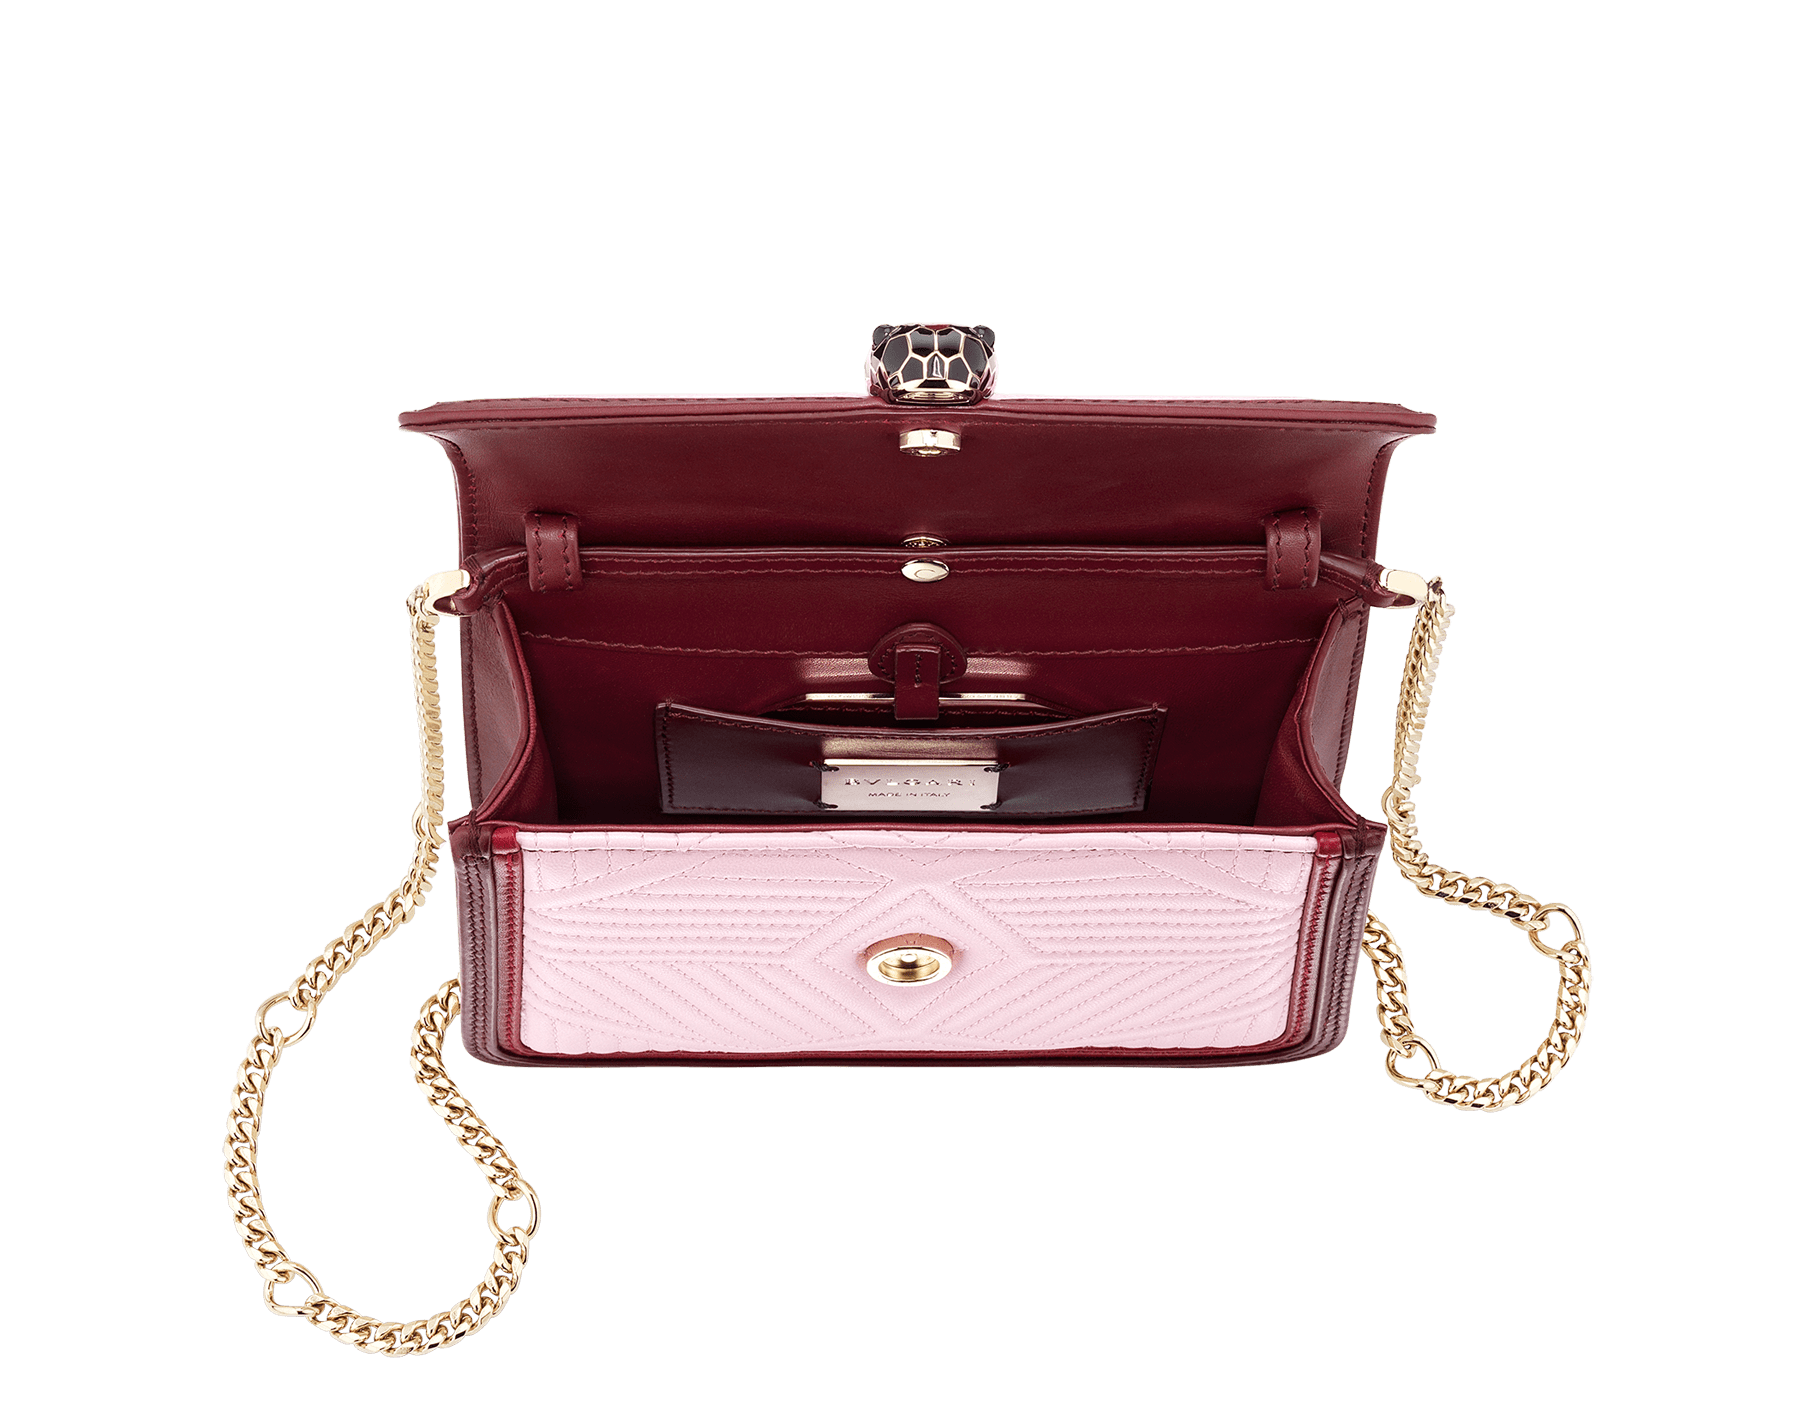 """Serpenti Diamond Blast"" crossbody micro bag in rosa di francia quilted nappa leather body and Roman garnet calf leather frames. Iconic snakehead closure in light gold plated brass enriched with black and ruby red enamel and black onyx eyes. 288844 image 4"